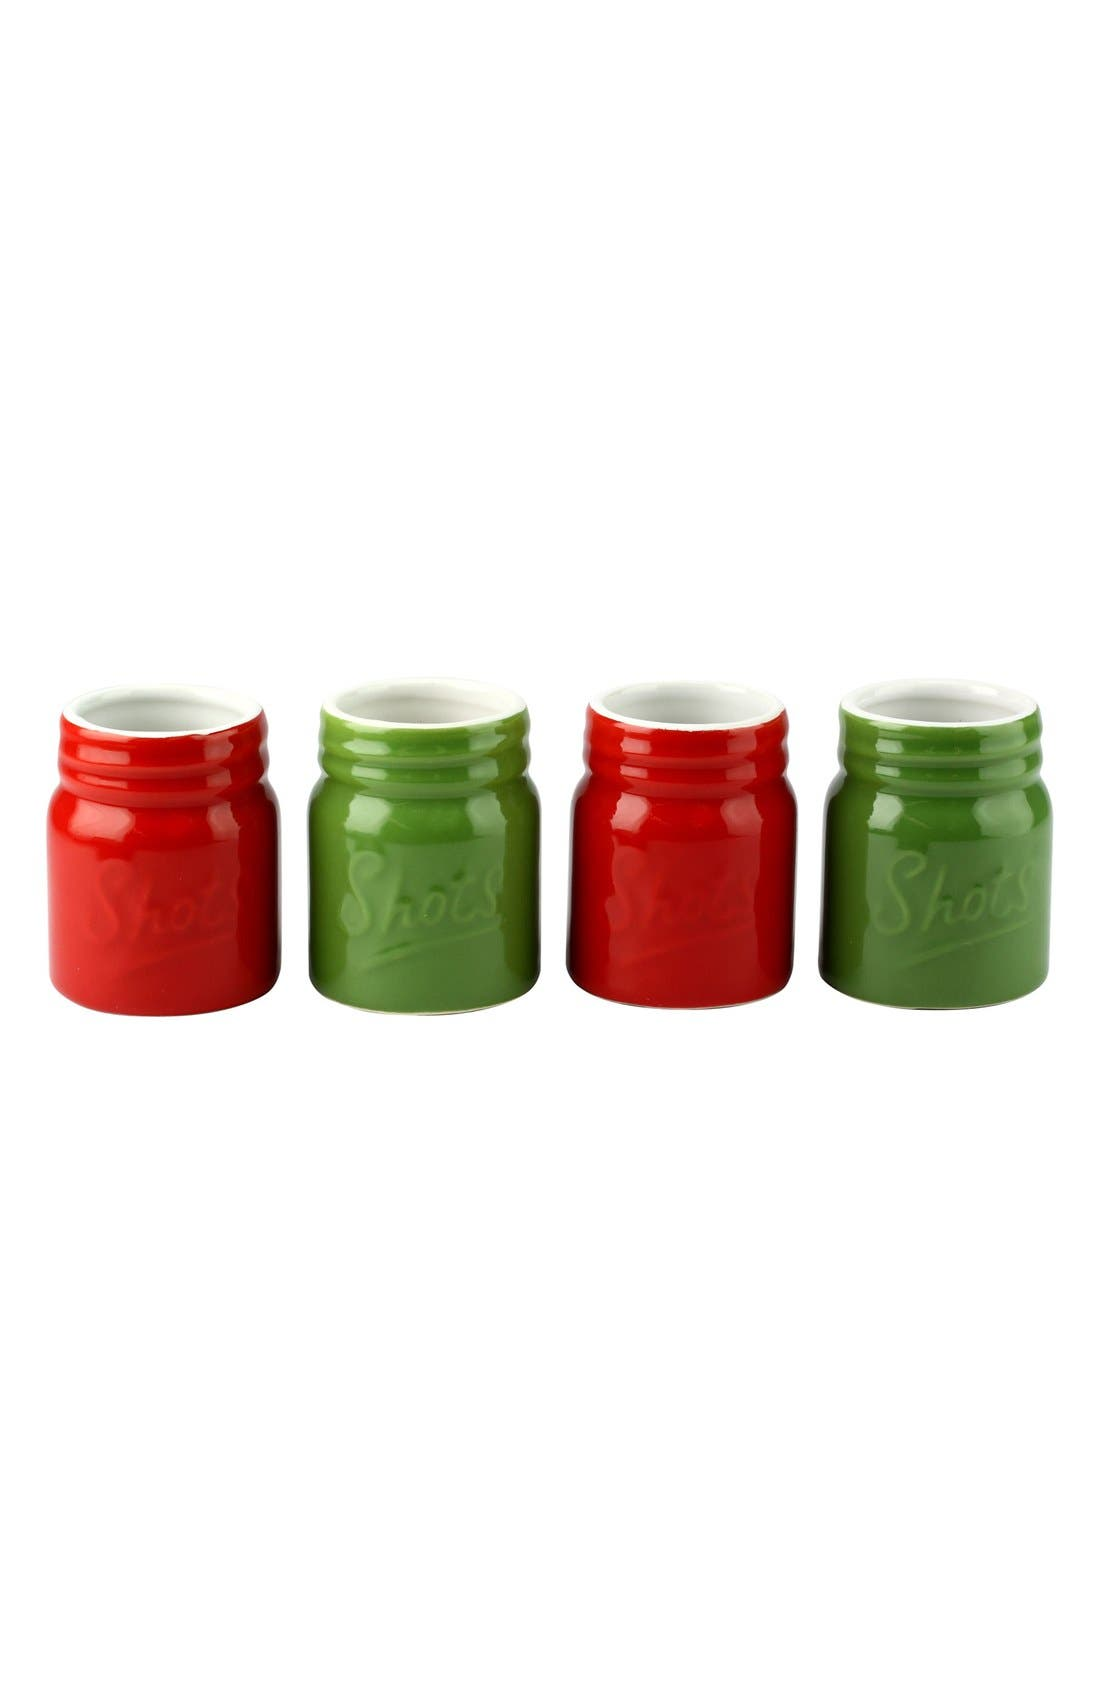 Alternate Image 1 Selected - Barbuzzo Ceramic Mason Jar Shot Cups (Set of 4)